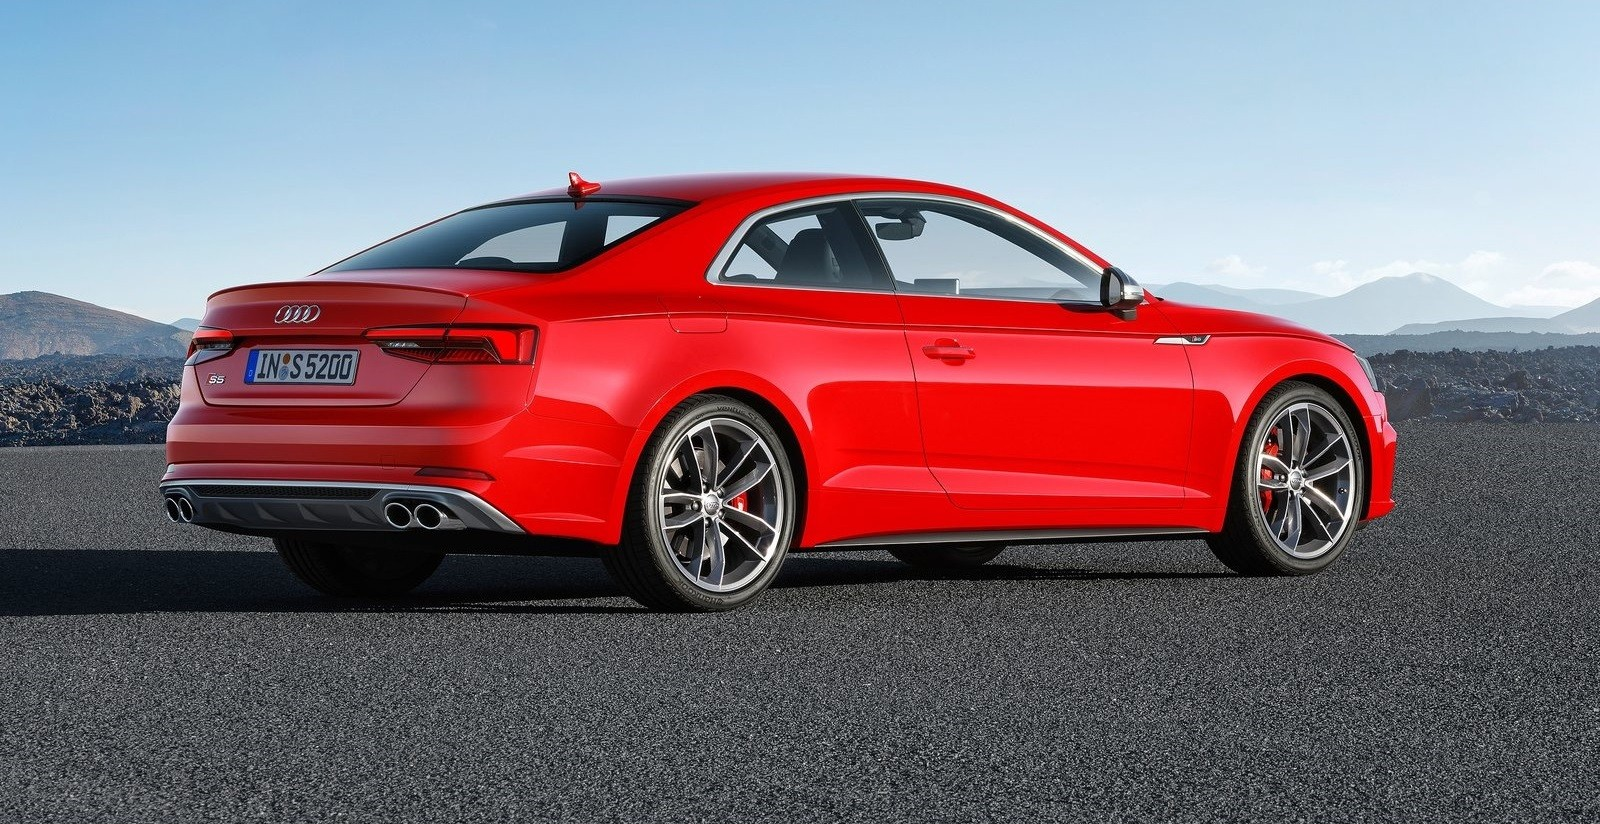 background - Nové Audi S5 v podání borců ze SPEED-Buster